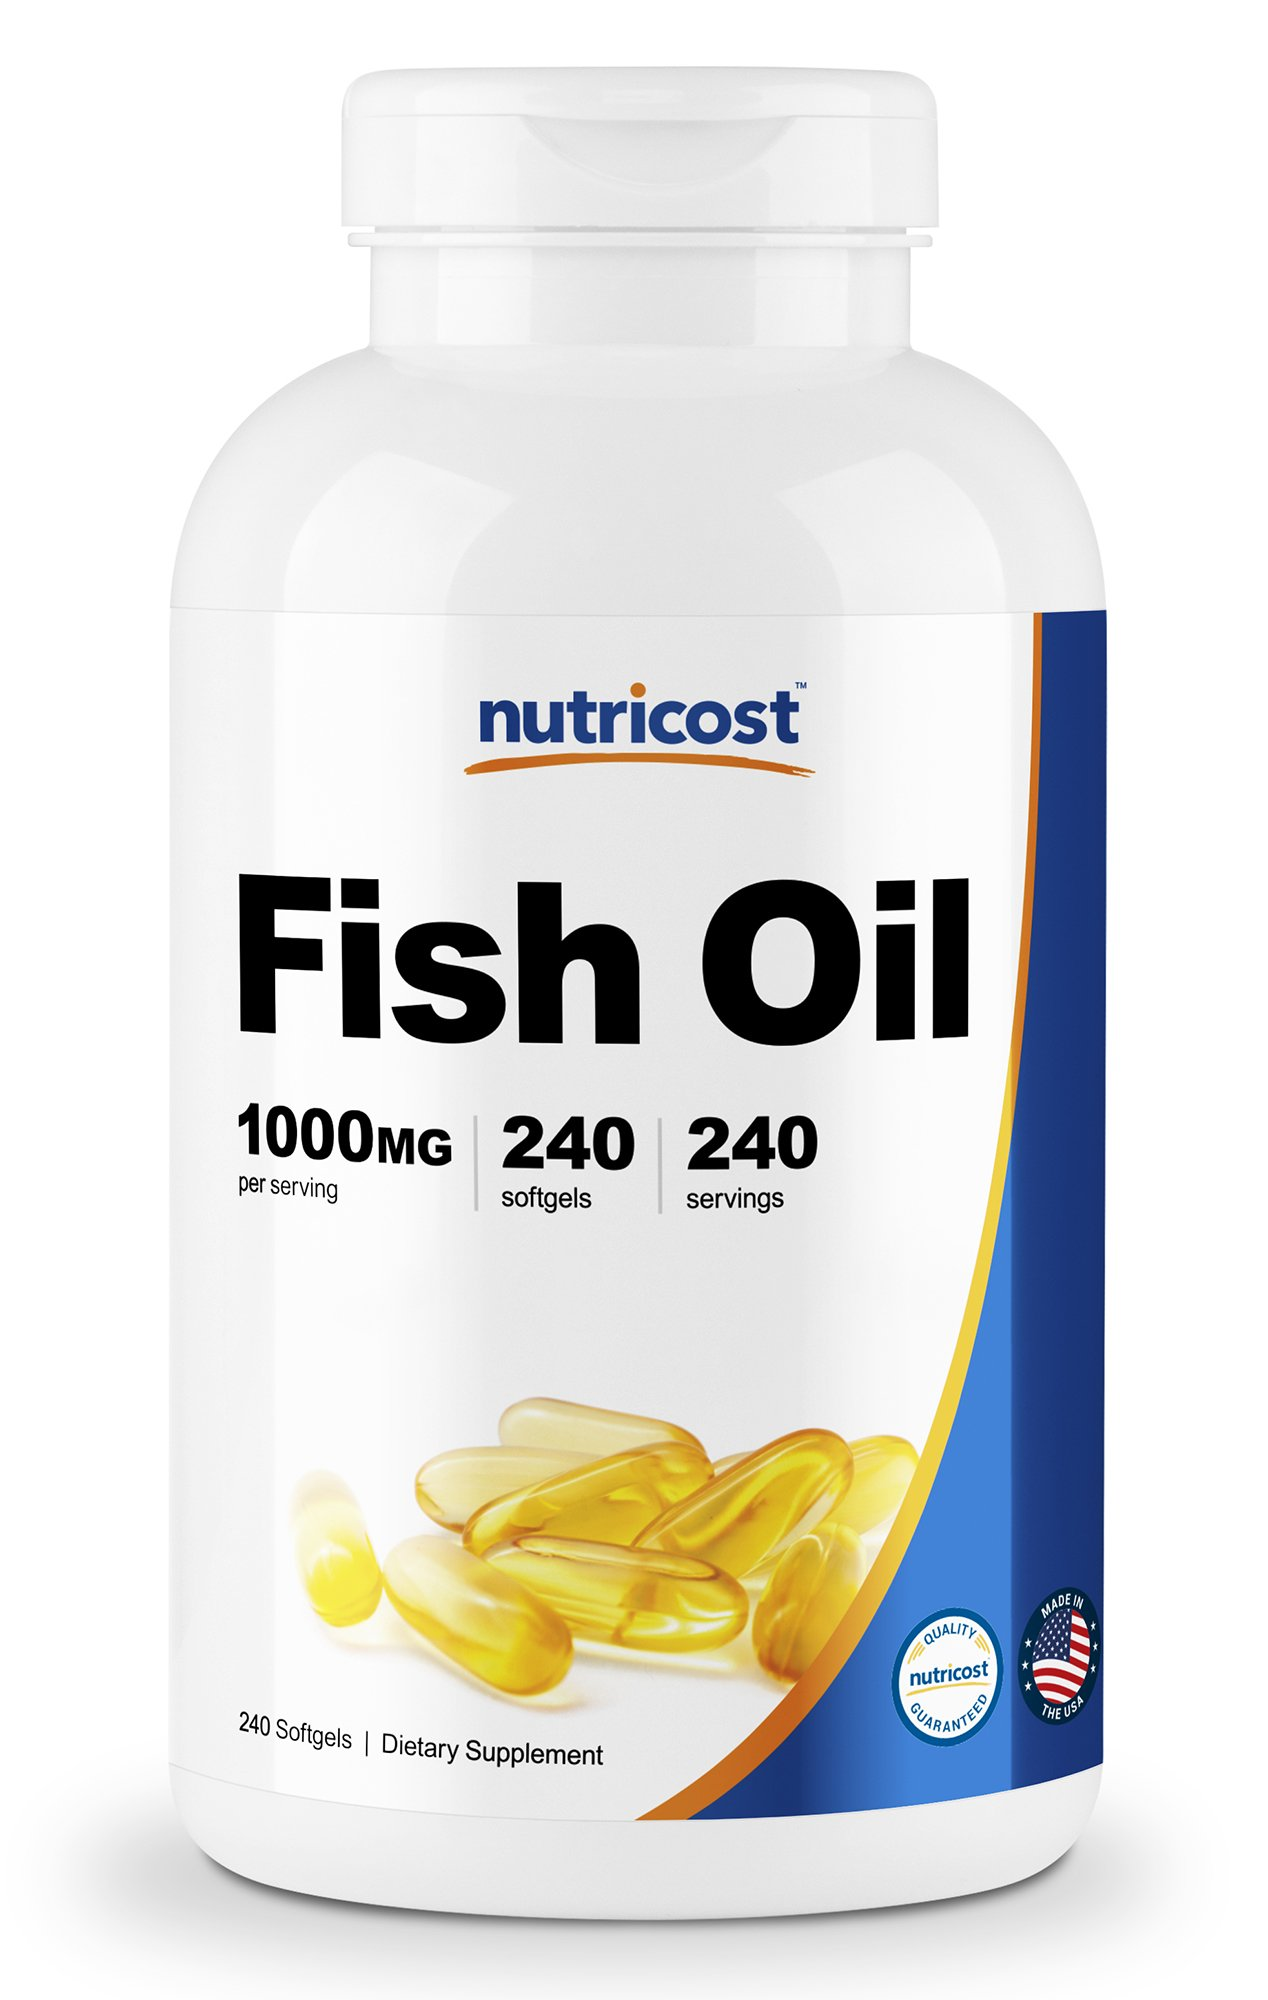 Nutricost Fish Oil Omega 3 1000mg (600mg of Omega-3), 240 Softgels